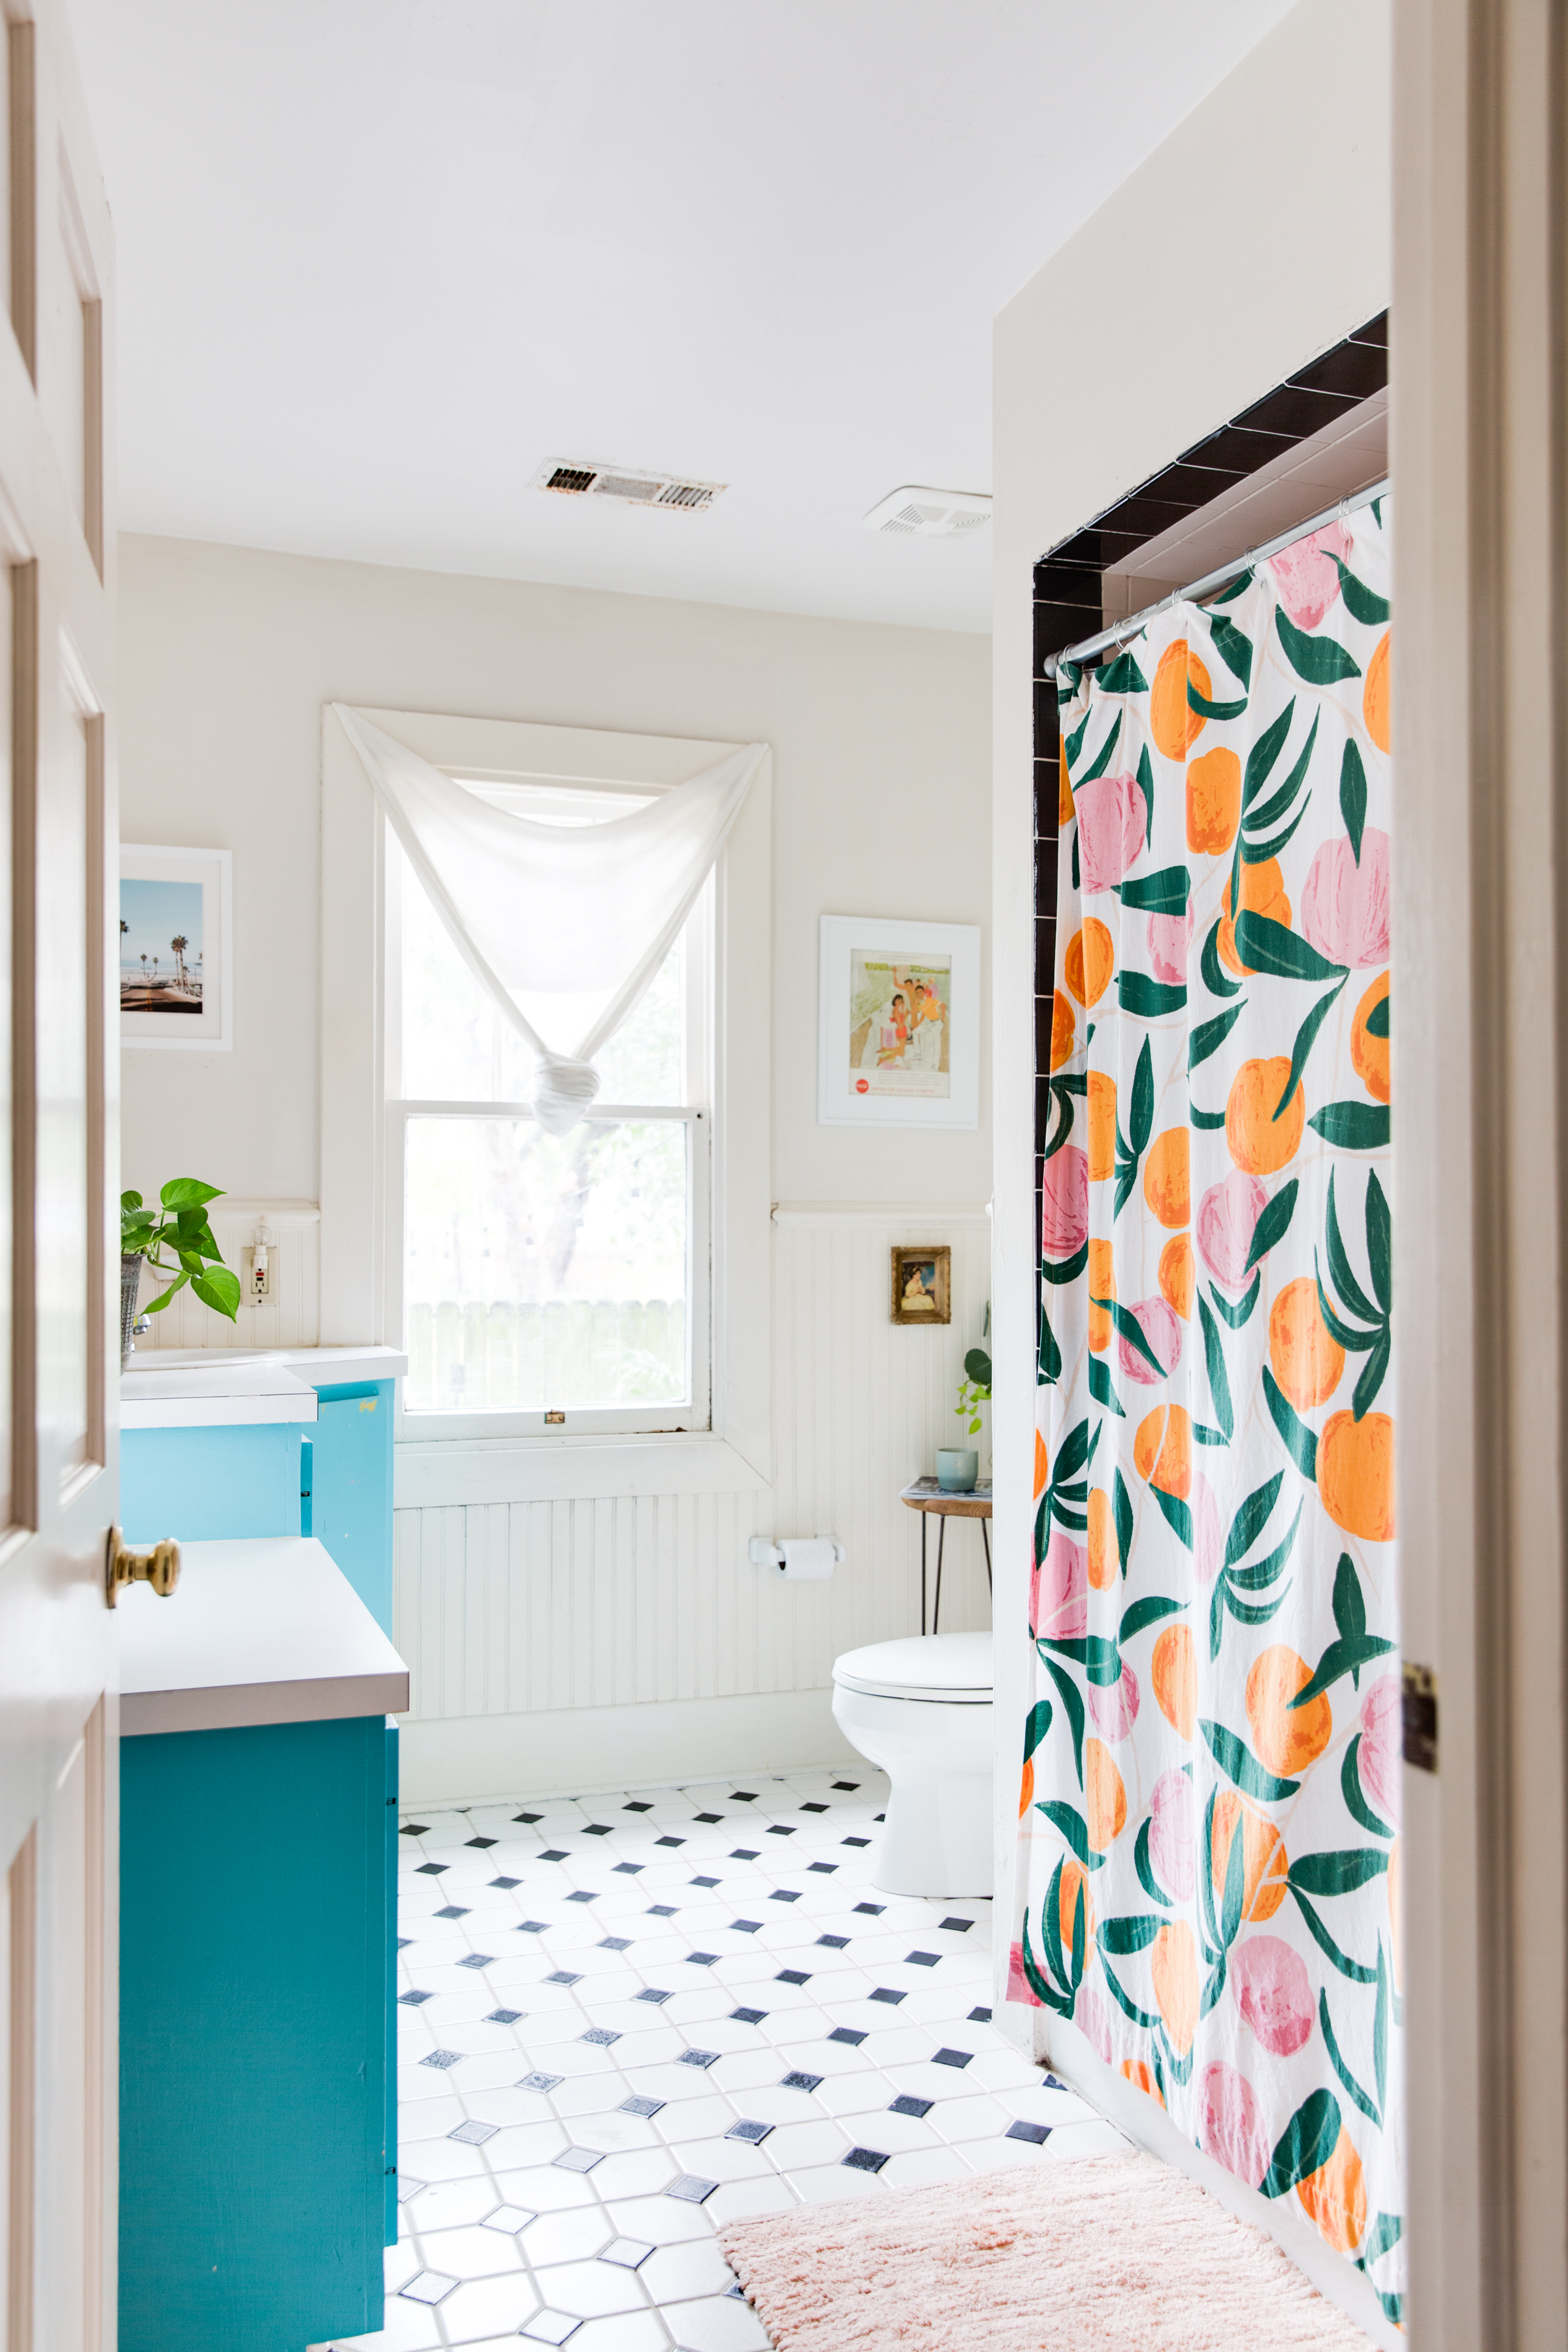 10 Bathroom Wainscoting Ideas Photos Of Pretty Wainscoted Bathrooms Apartment Therapy